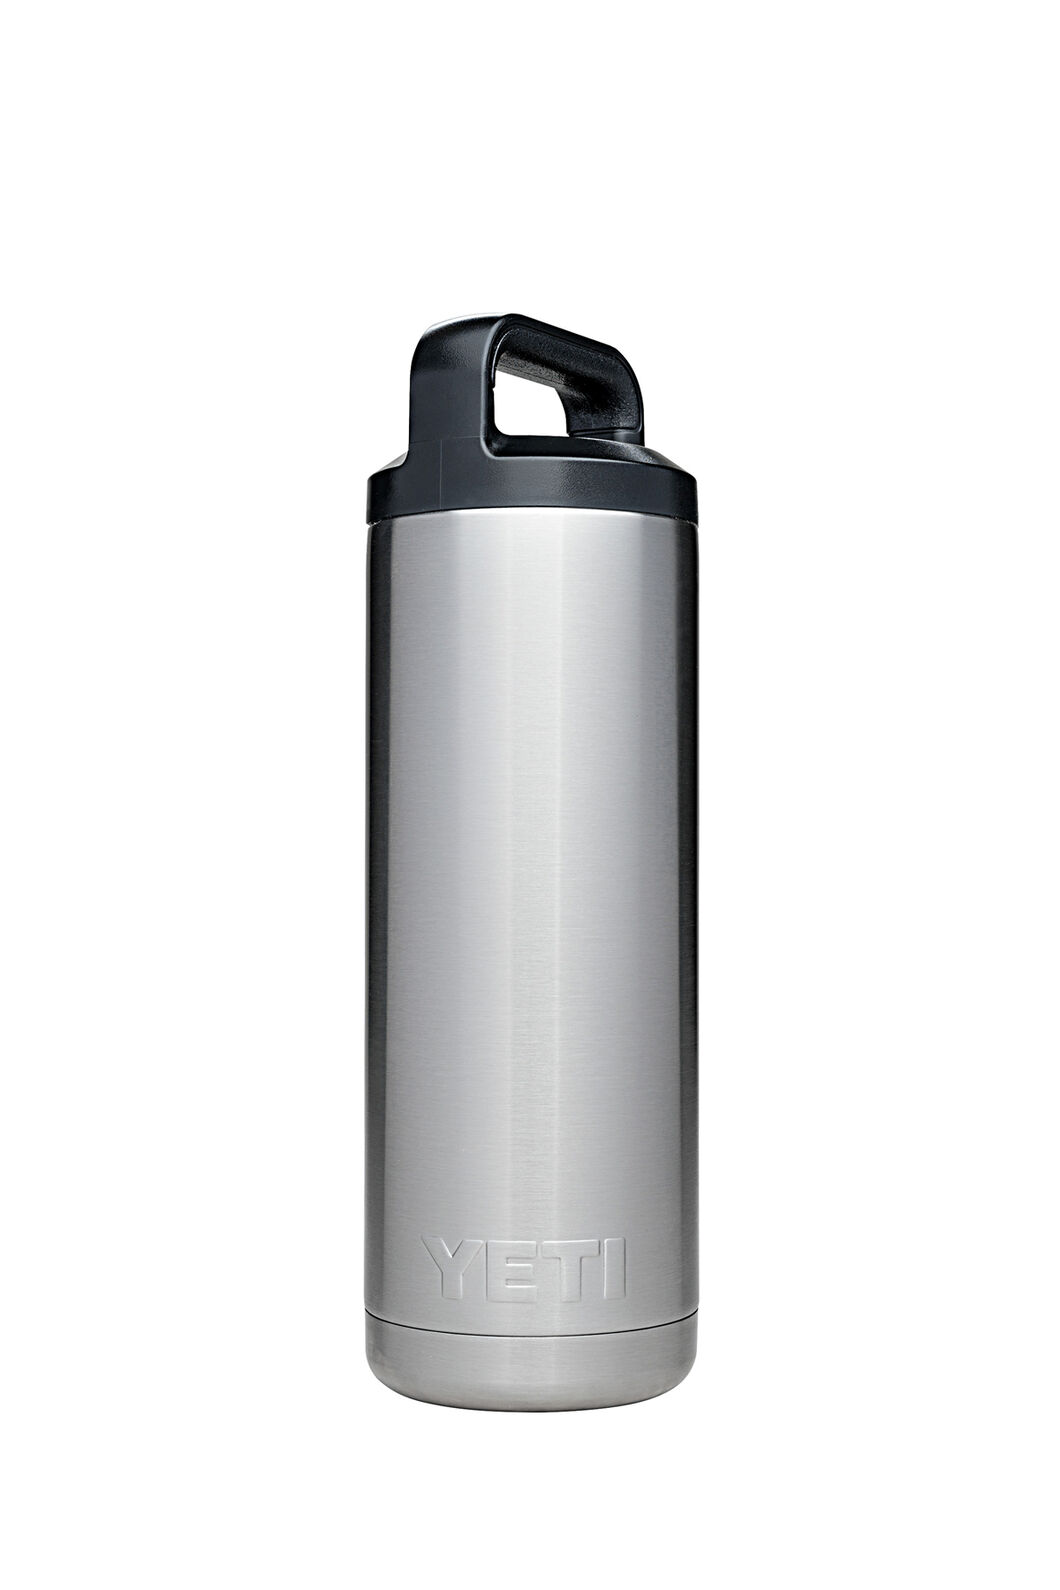 Yeti Rambler Drink Bottle Stainless Steel 18oz, Silver, hi-res